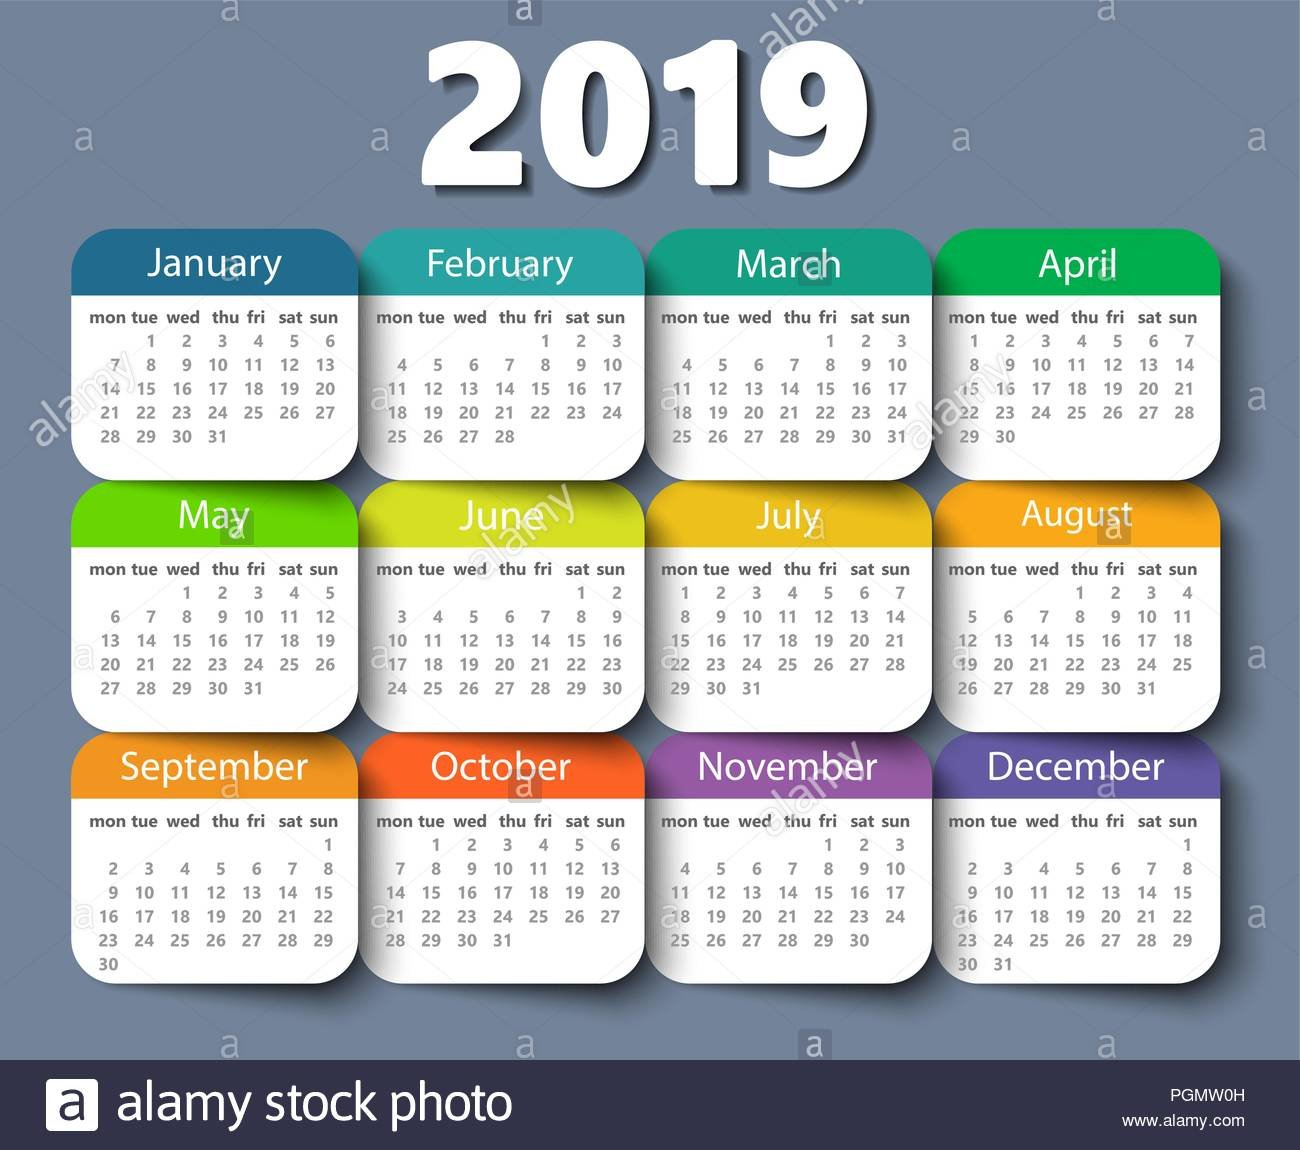 Calendar 2019 Year Vector Design Template. Week Starting On Monday Design A Calendar 2019